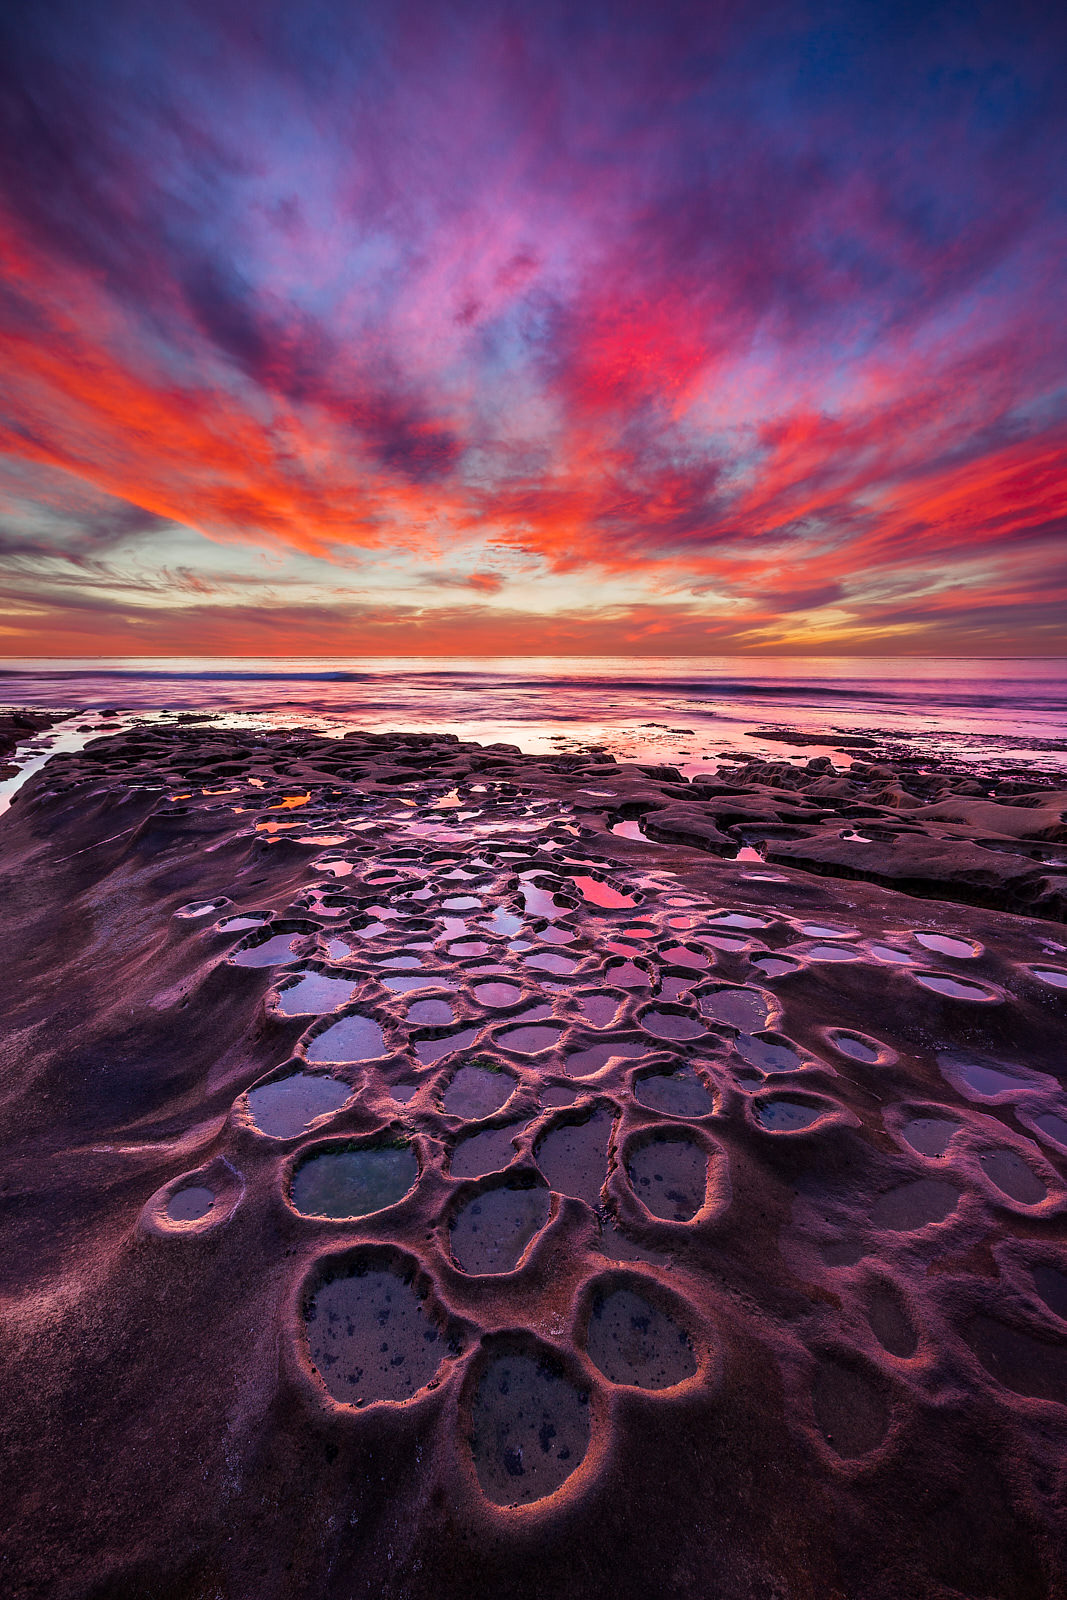 purple, red, and blue vibrant sunset over a very unique reef formation with the ocean along the coastline of La Jolla, California